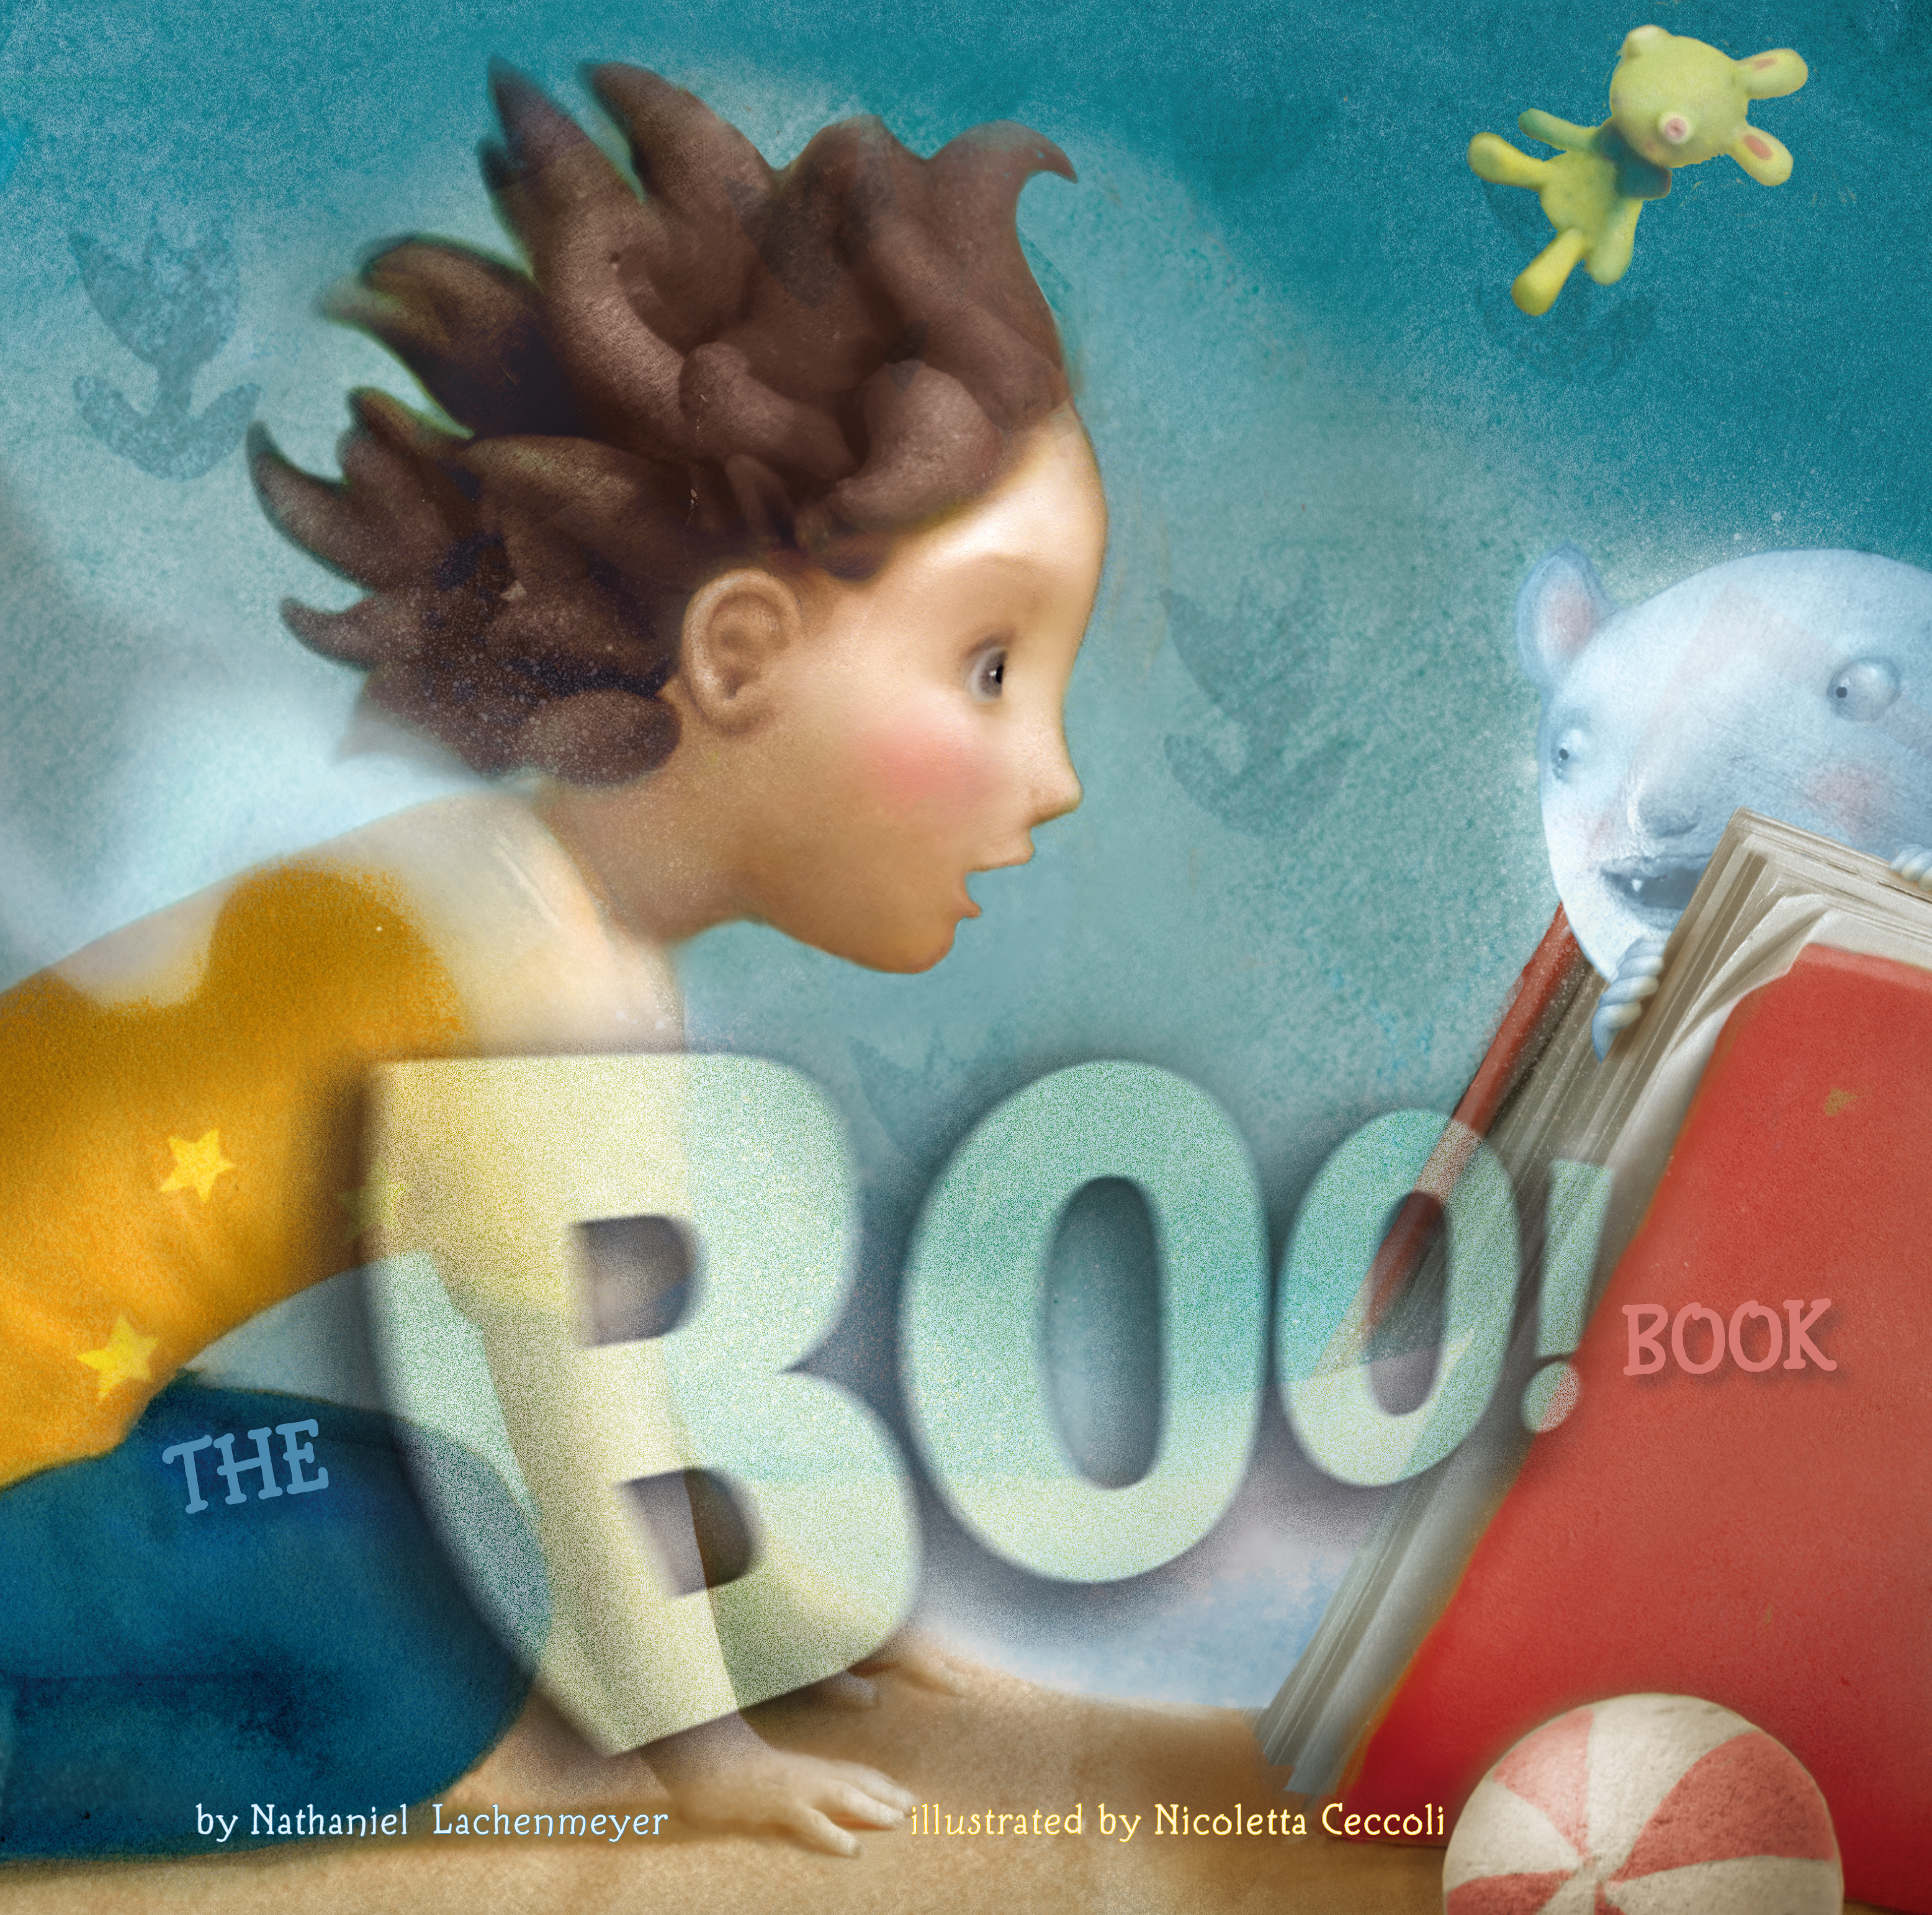 the boo book book by nathaniel lachenmeyer nicoletta